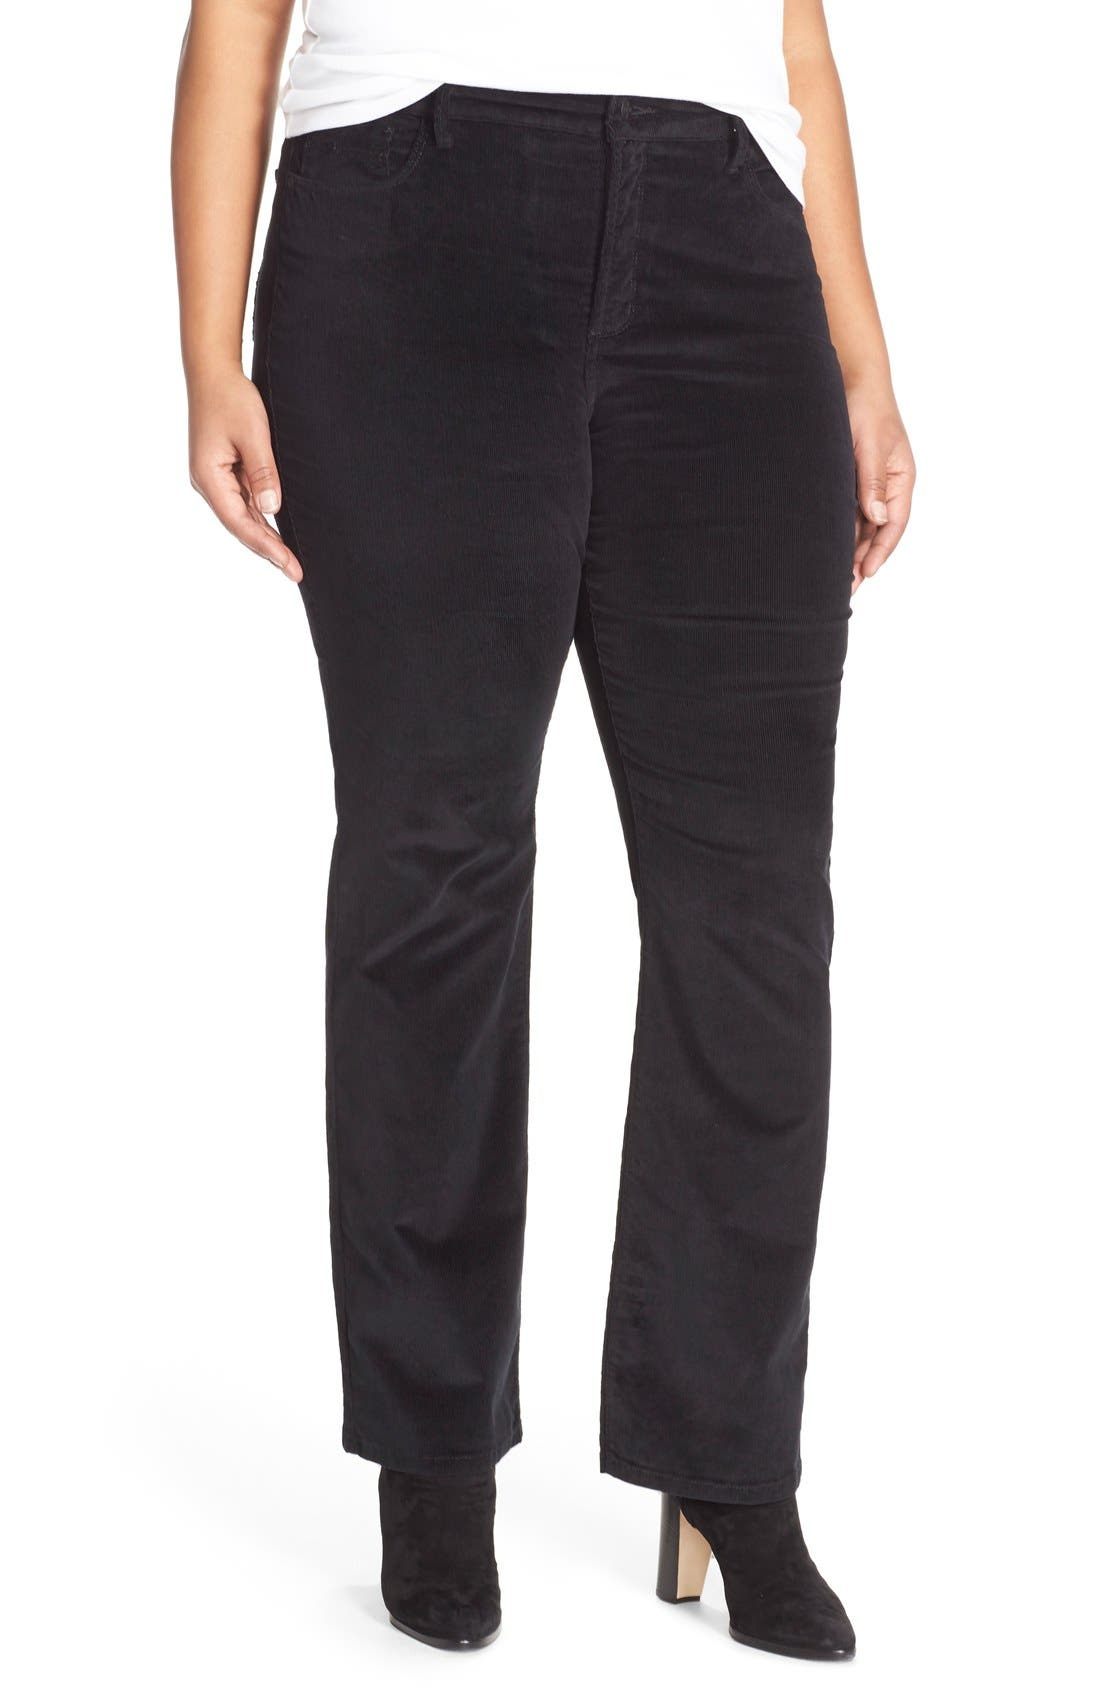 Corduroy Pants for Women: White, Black, Wool, Twill & More | Nordstrom